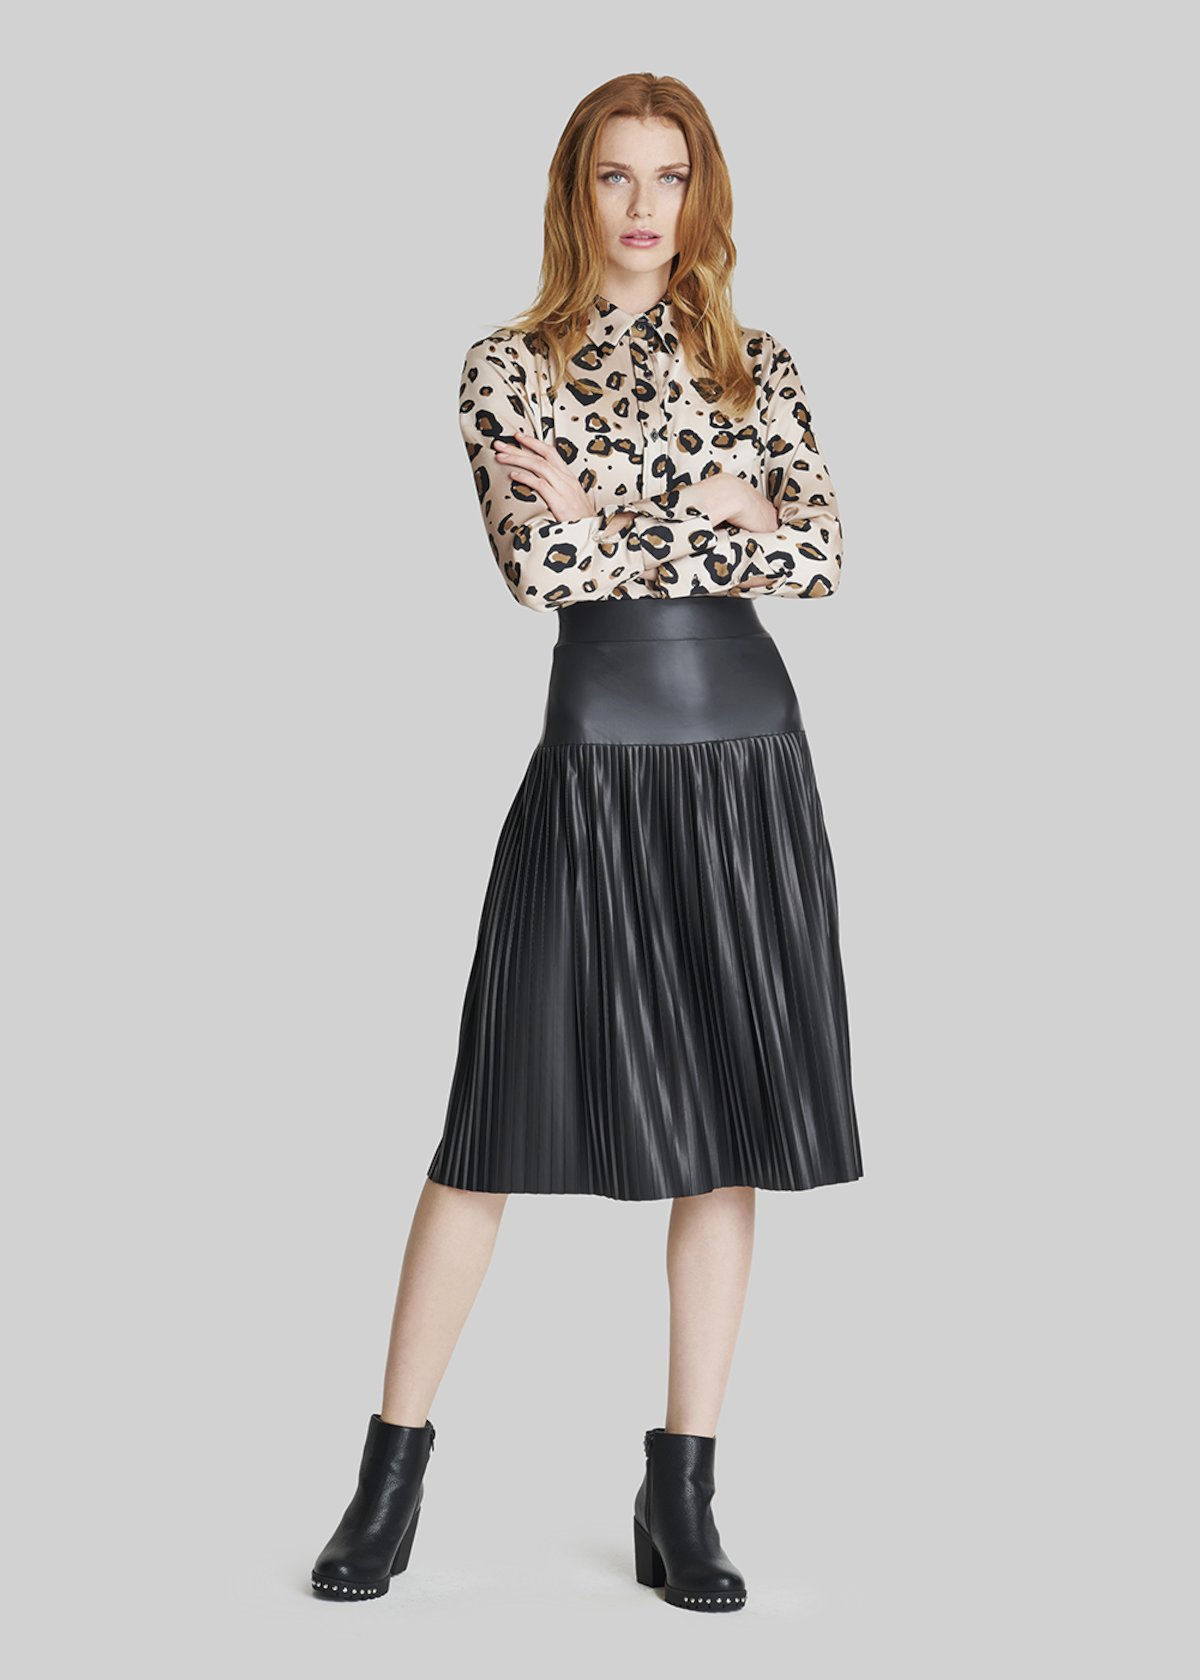 Gennyfer pleated faux leather skirt. - Black - Woman - Category image